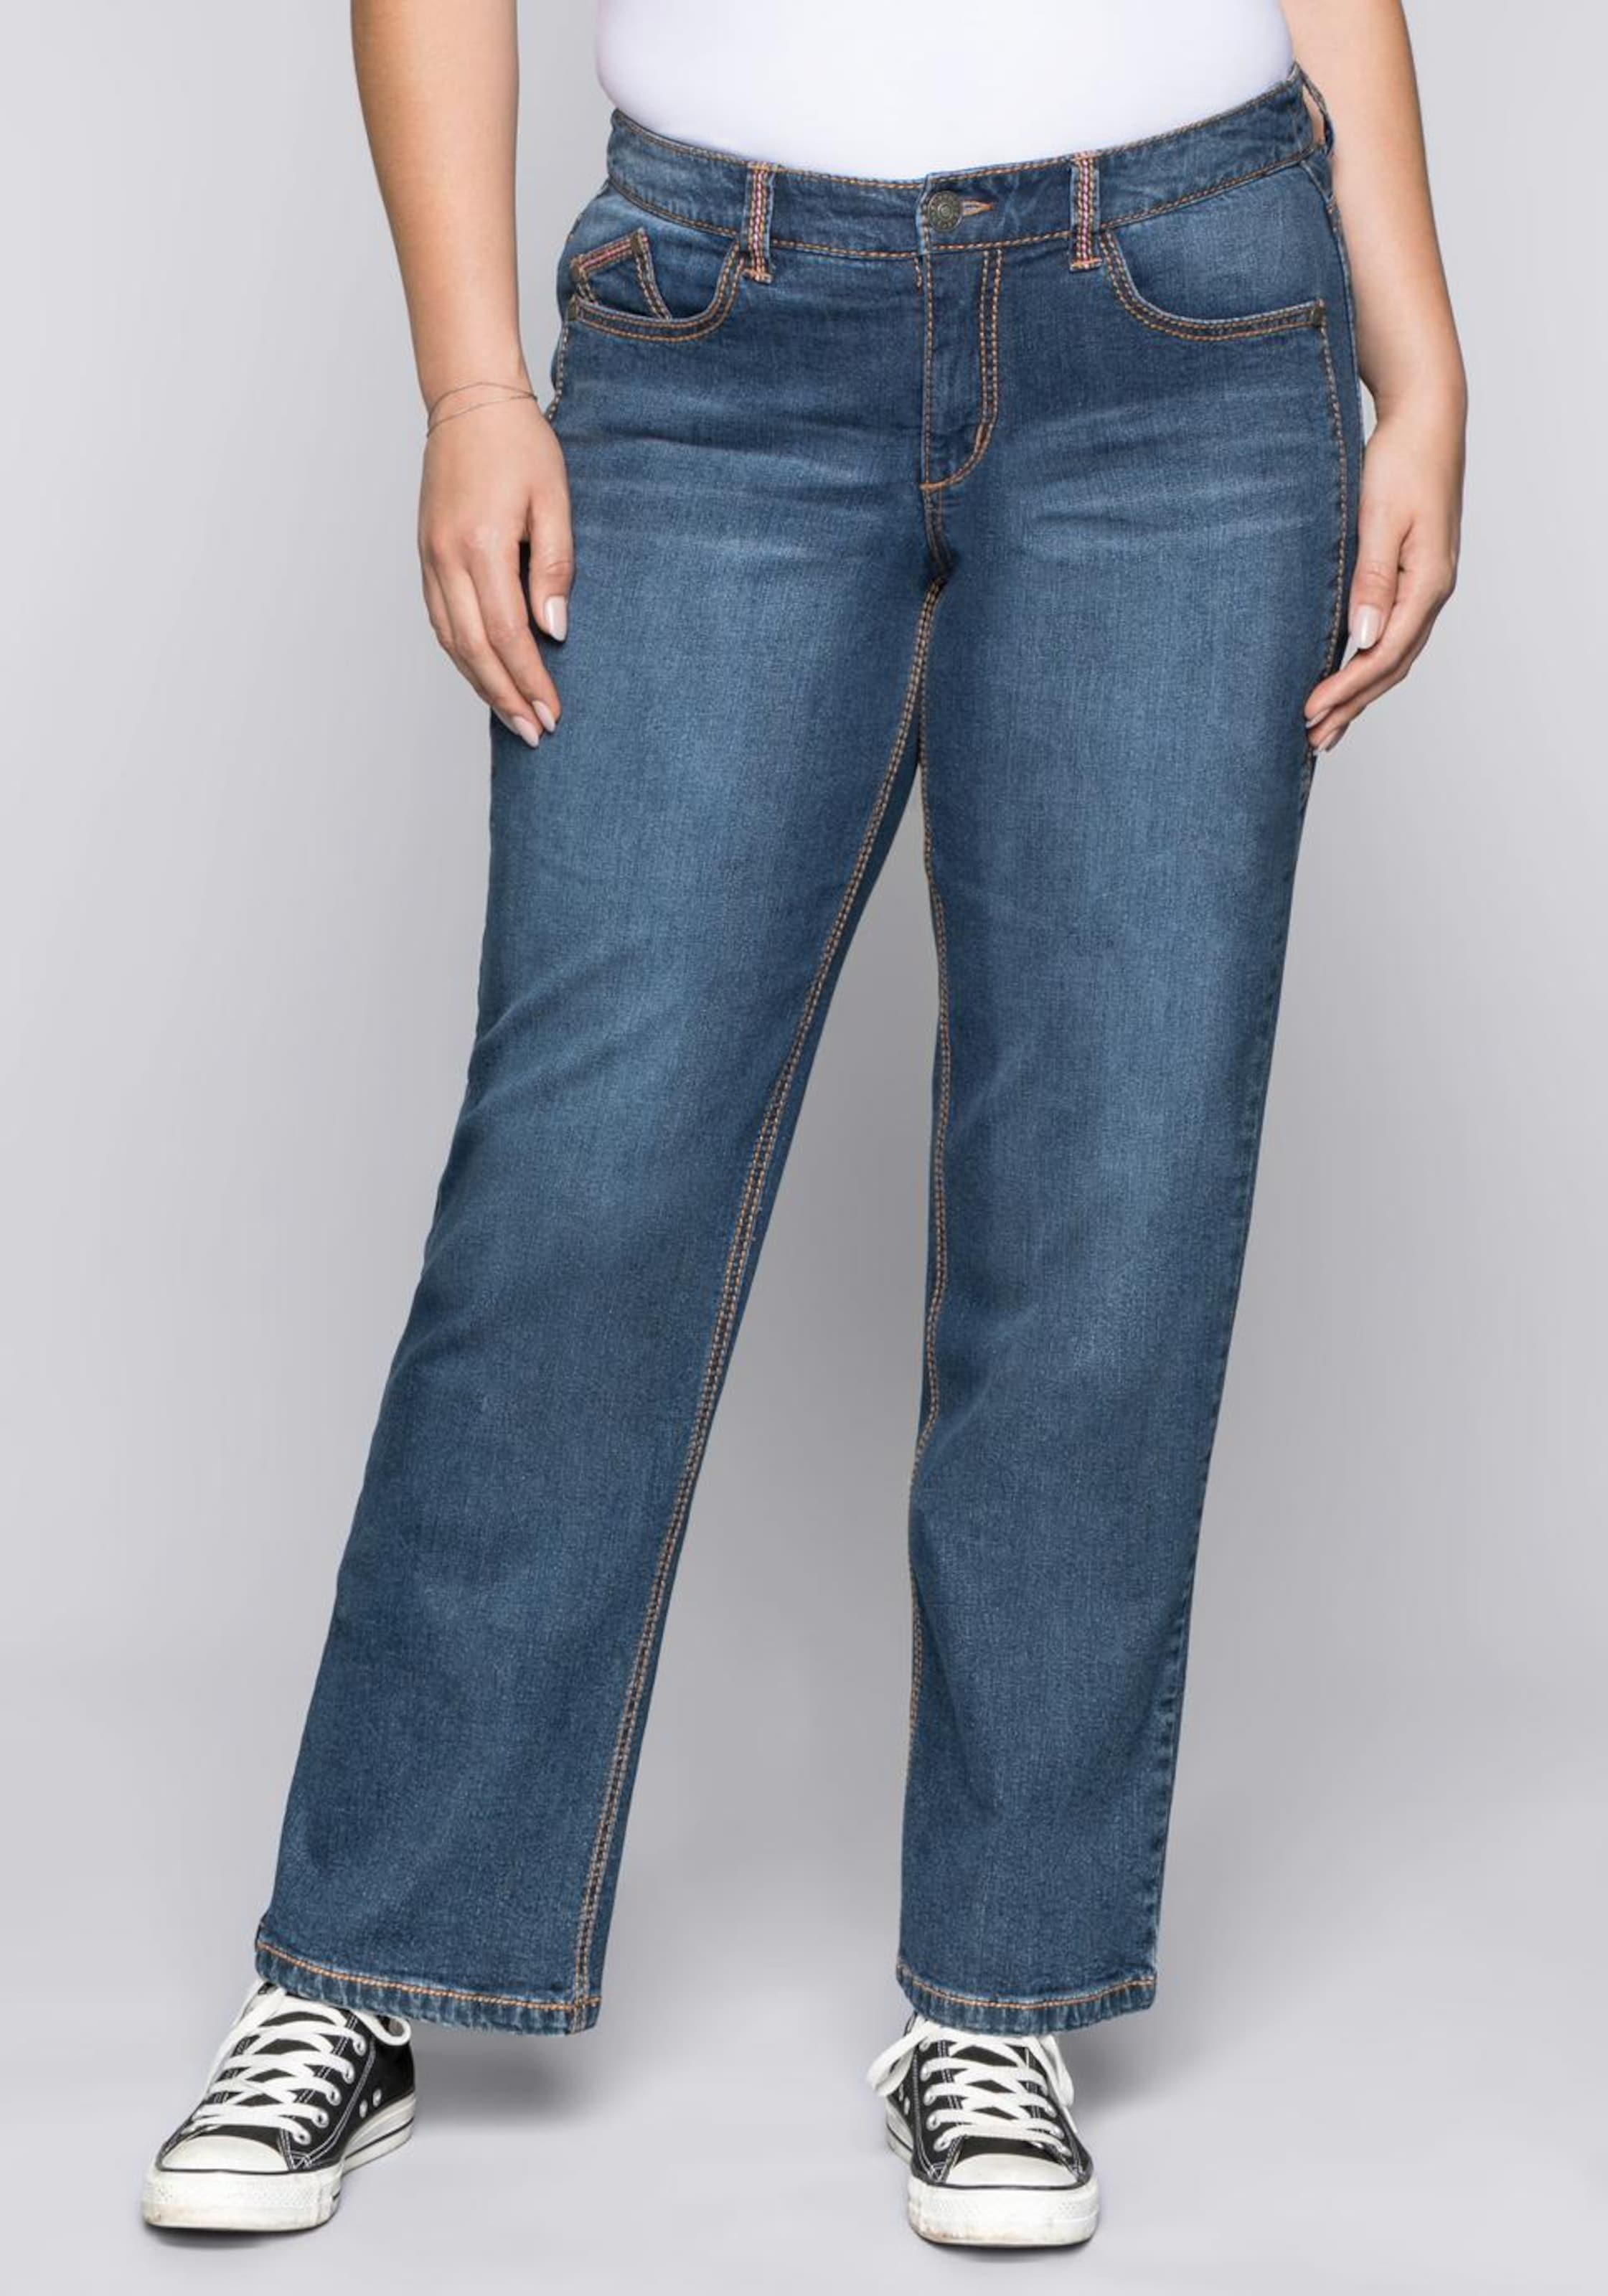 Blue In In Sheego Blue Denim Jeans Sheego Denim Jeans A3R54jL